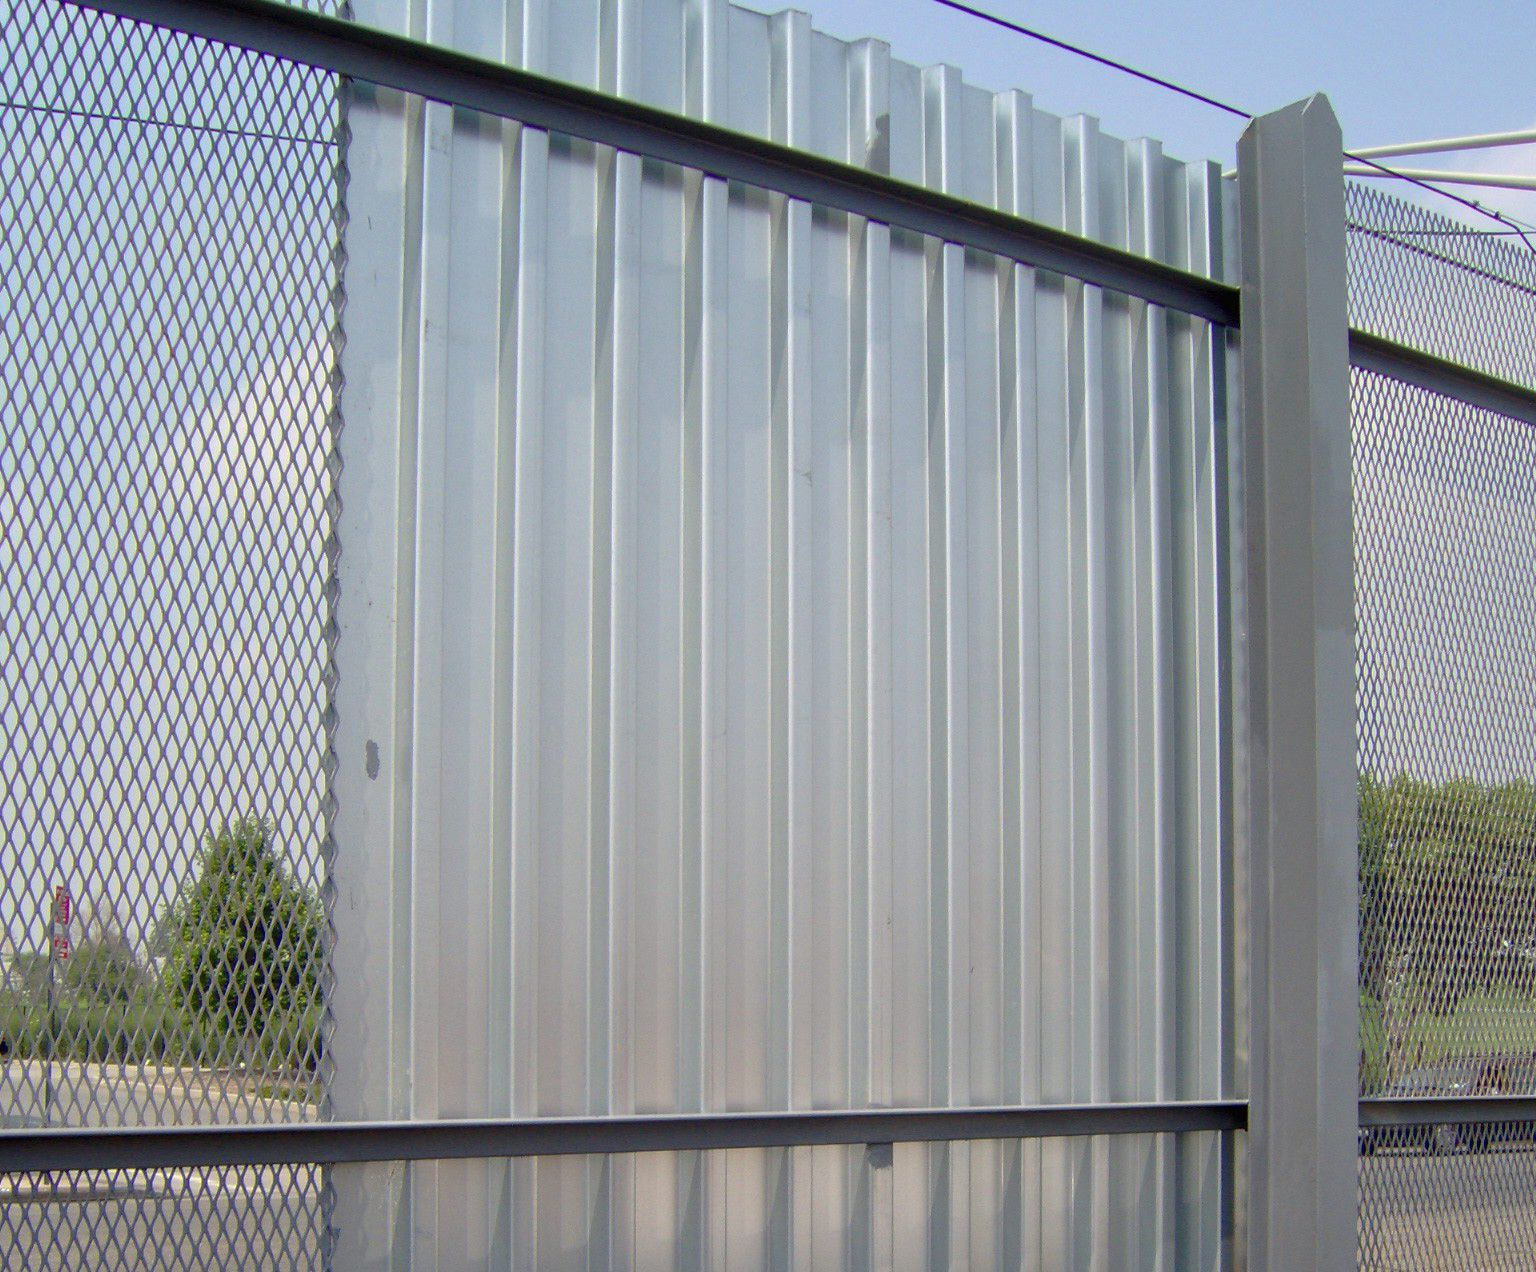 Steel privacy fence panels a and decorating steel privacy fence baanklon Images